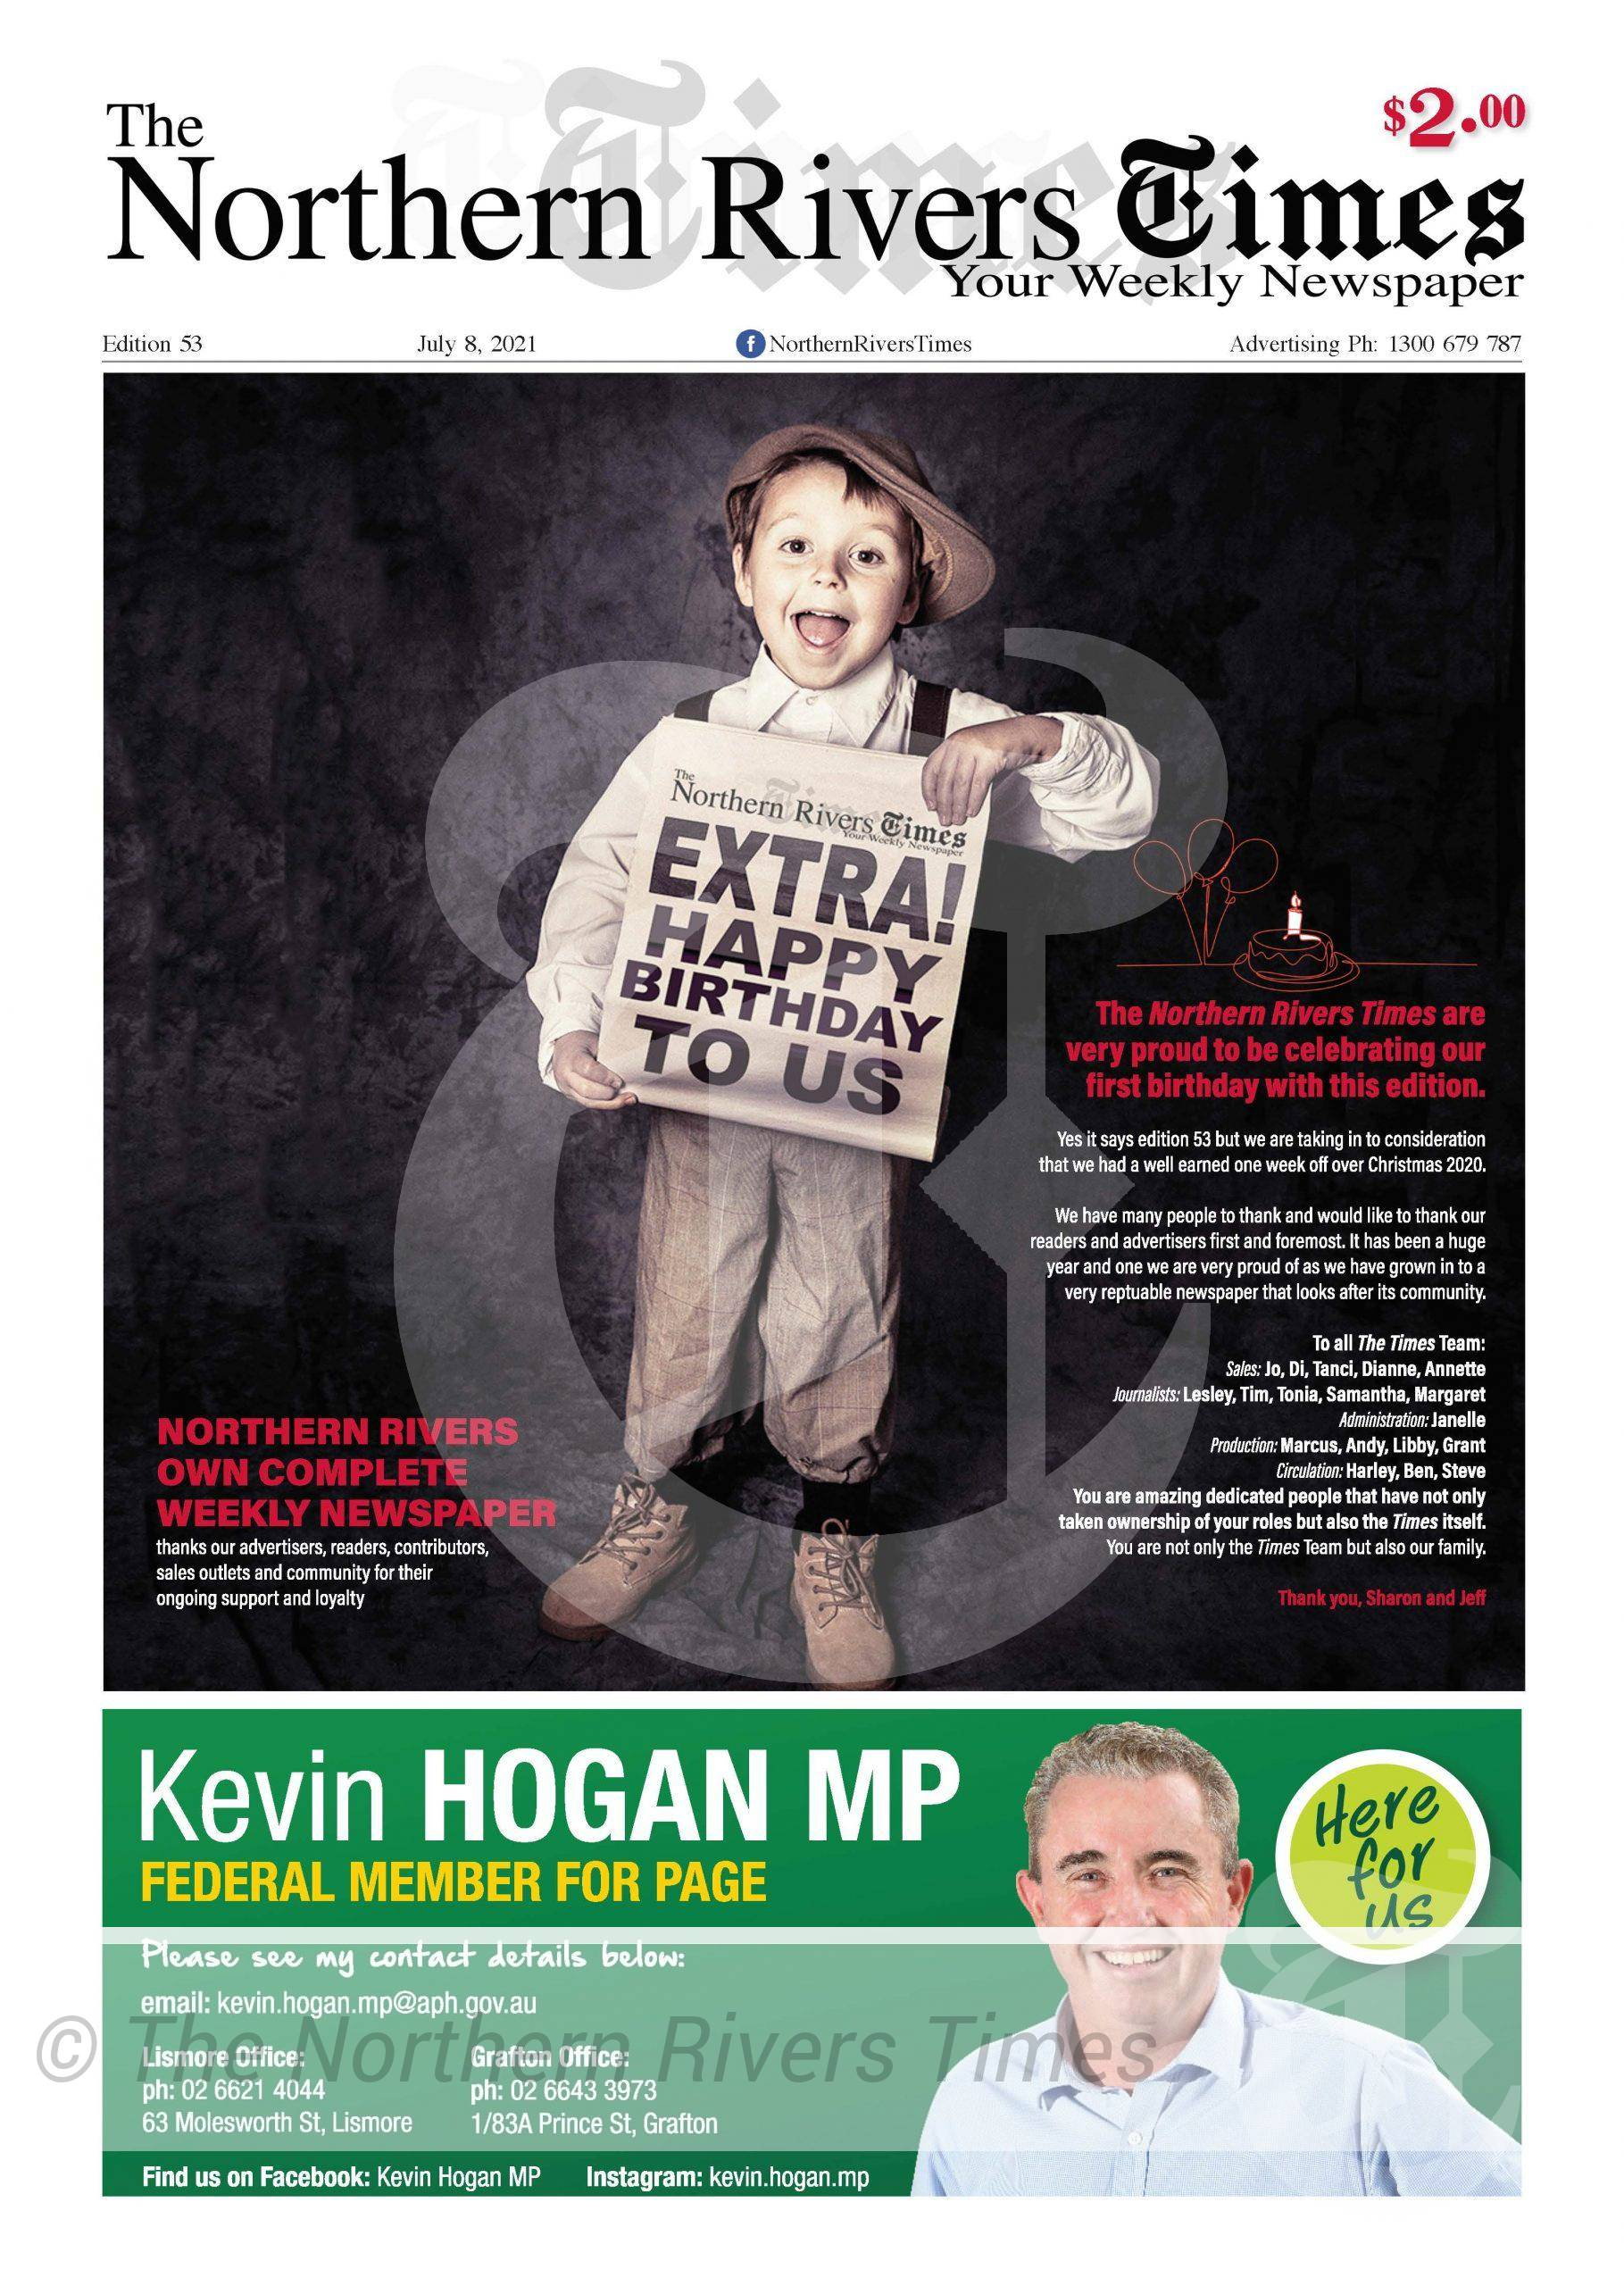 The Northern Rivers Times